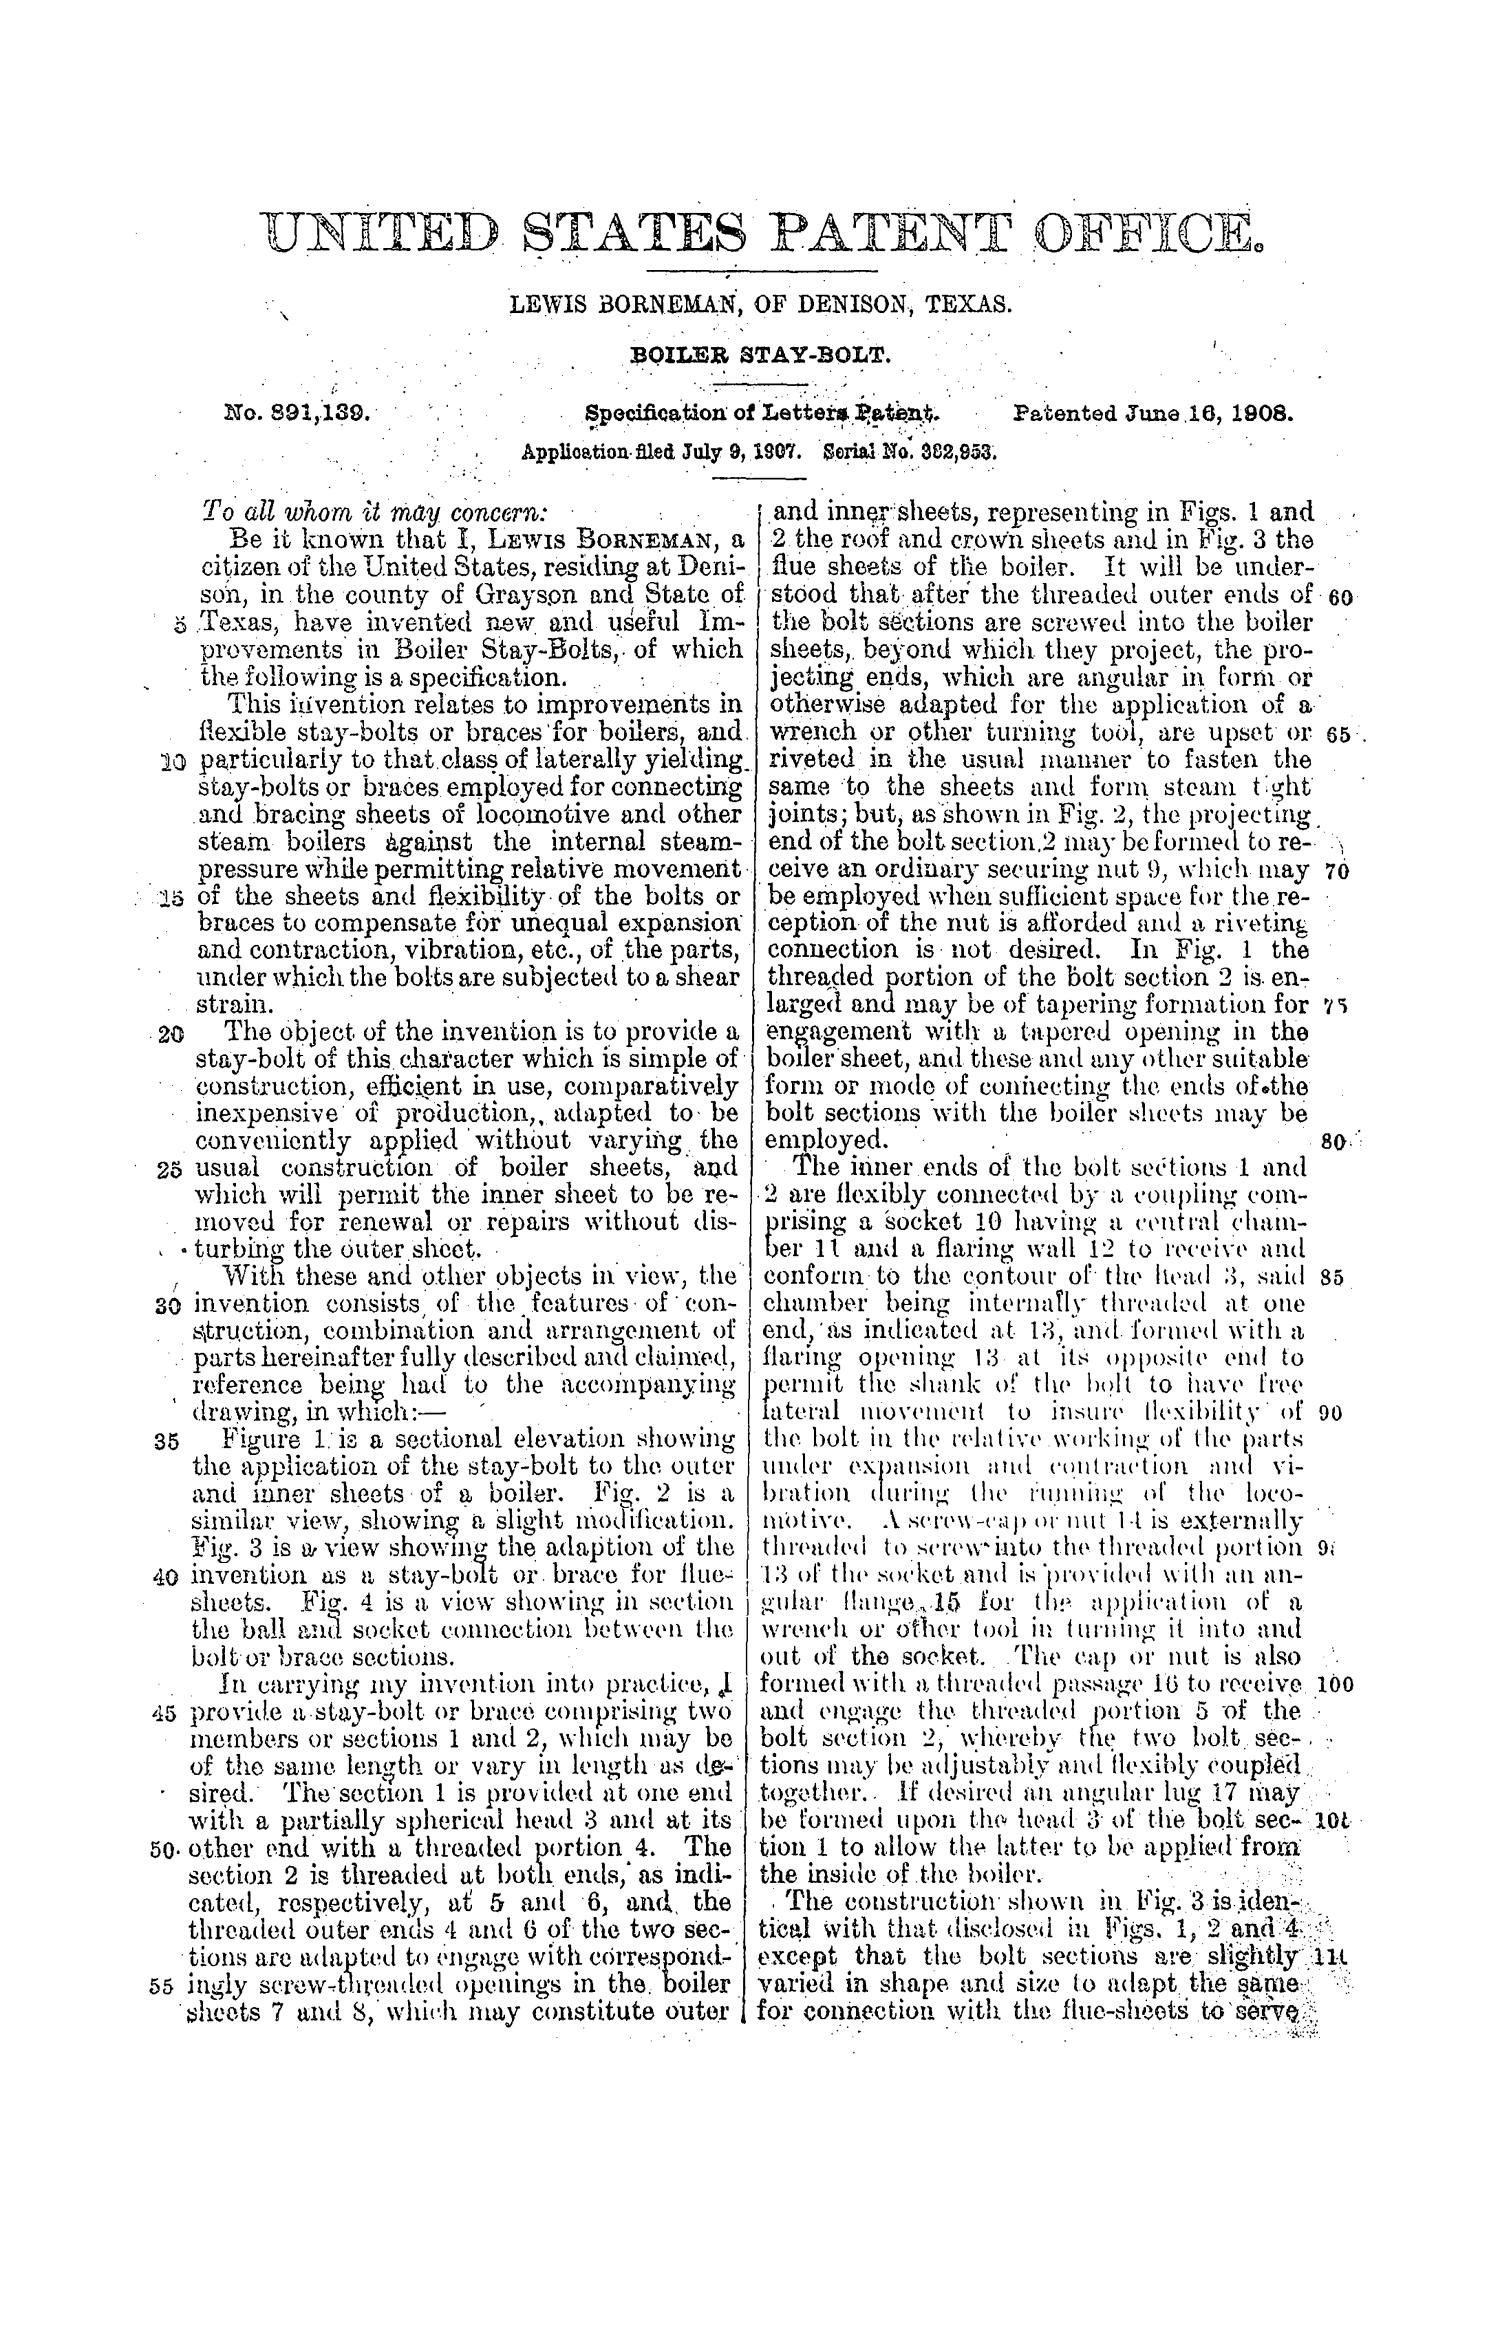 Boiler Stay Bolt - Page 2 of 3 - The Portal to Texas History